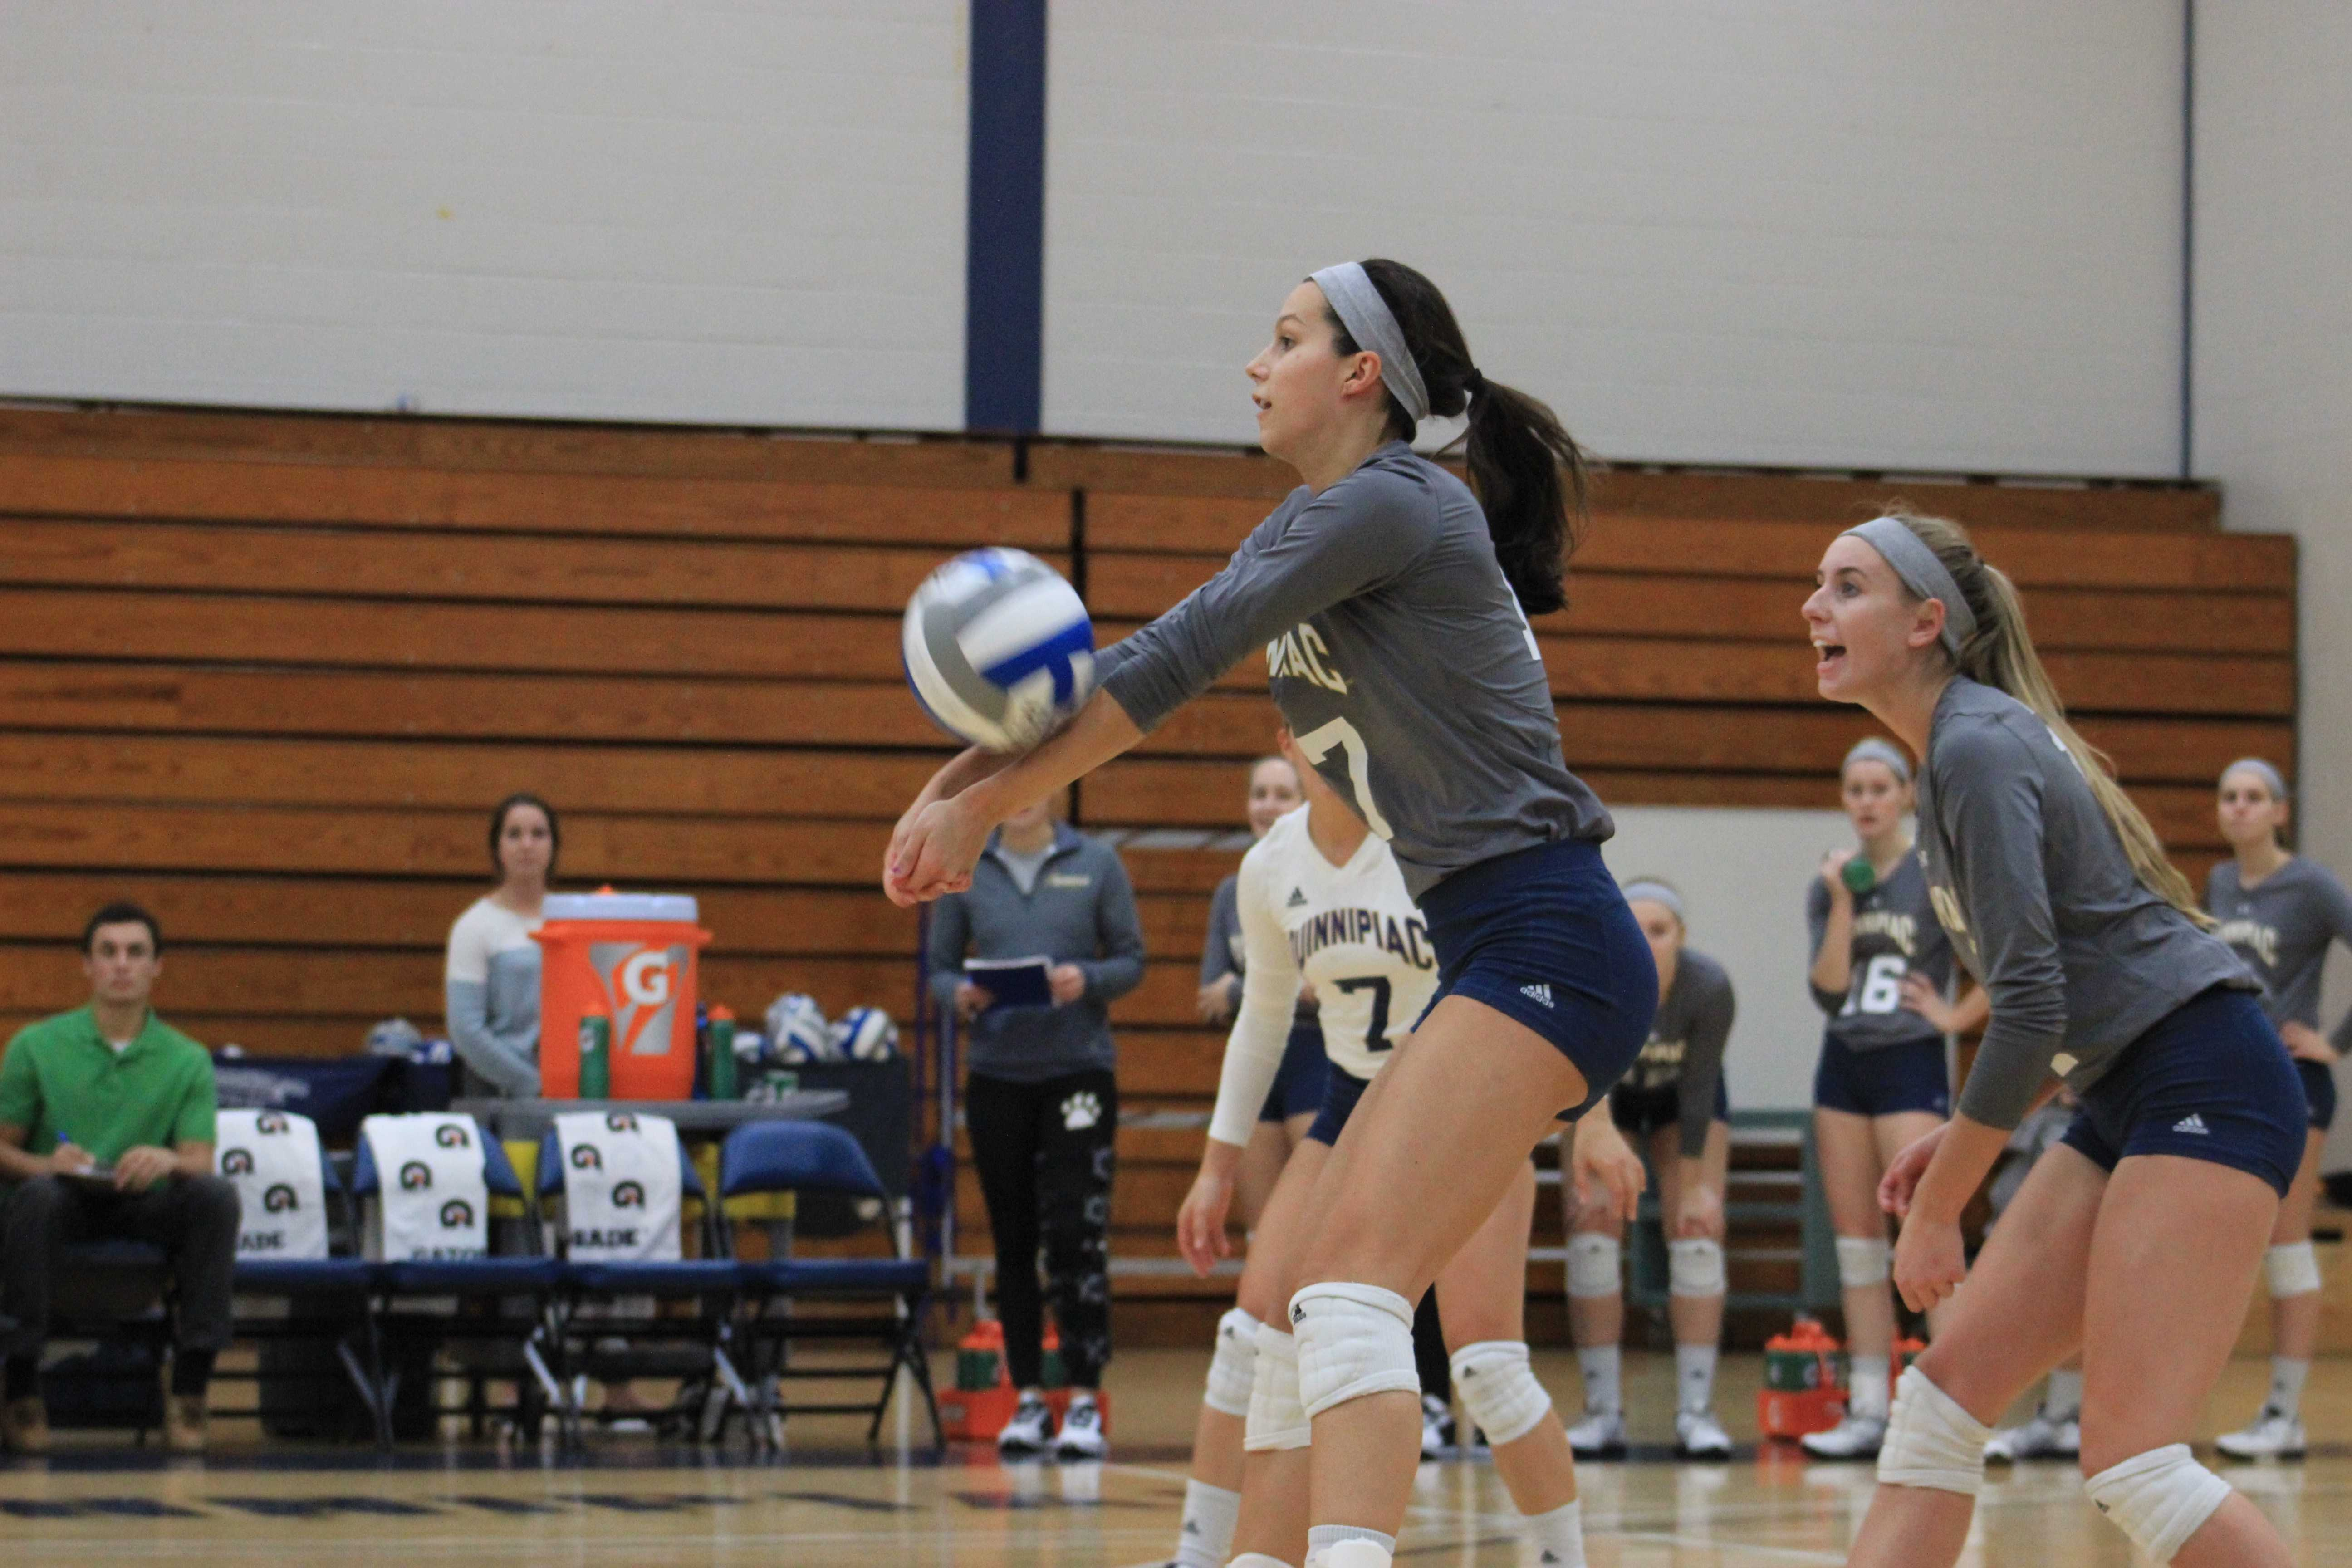 Volleyball remains humble through newfound success